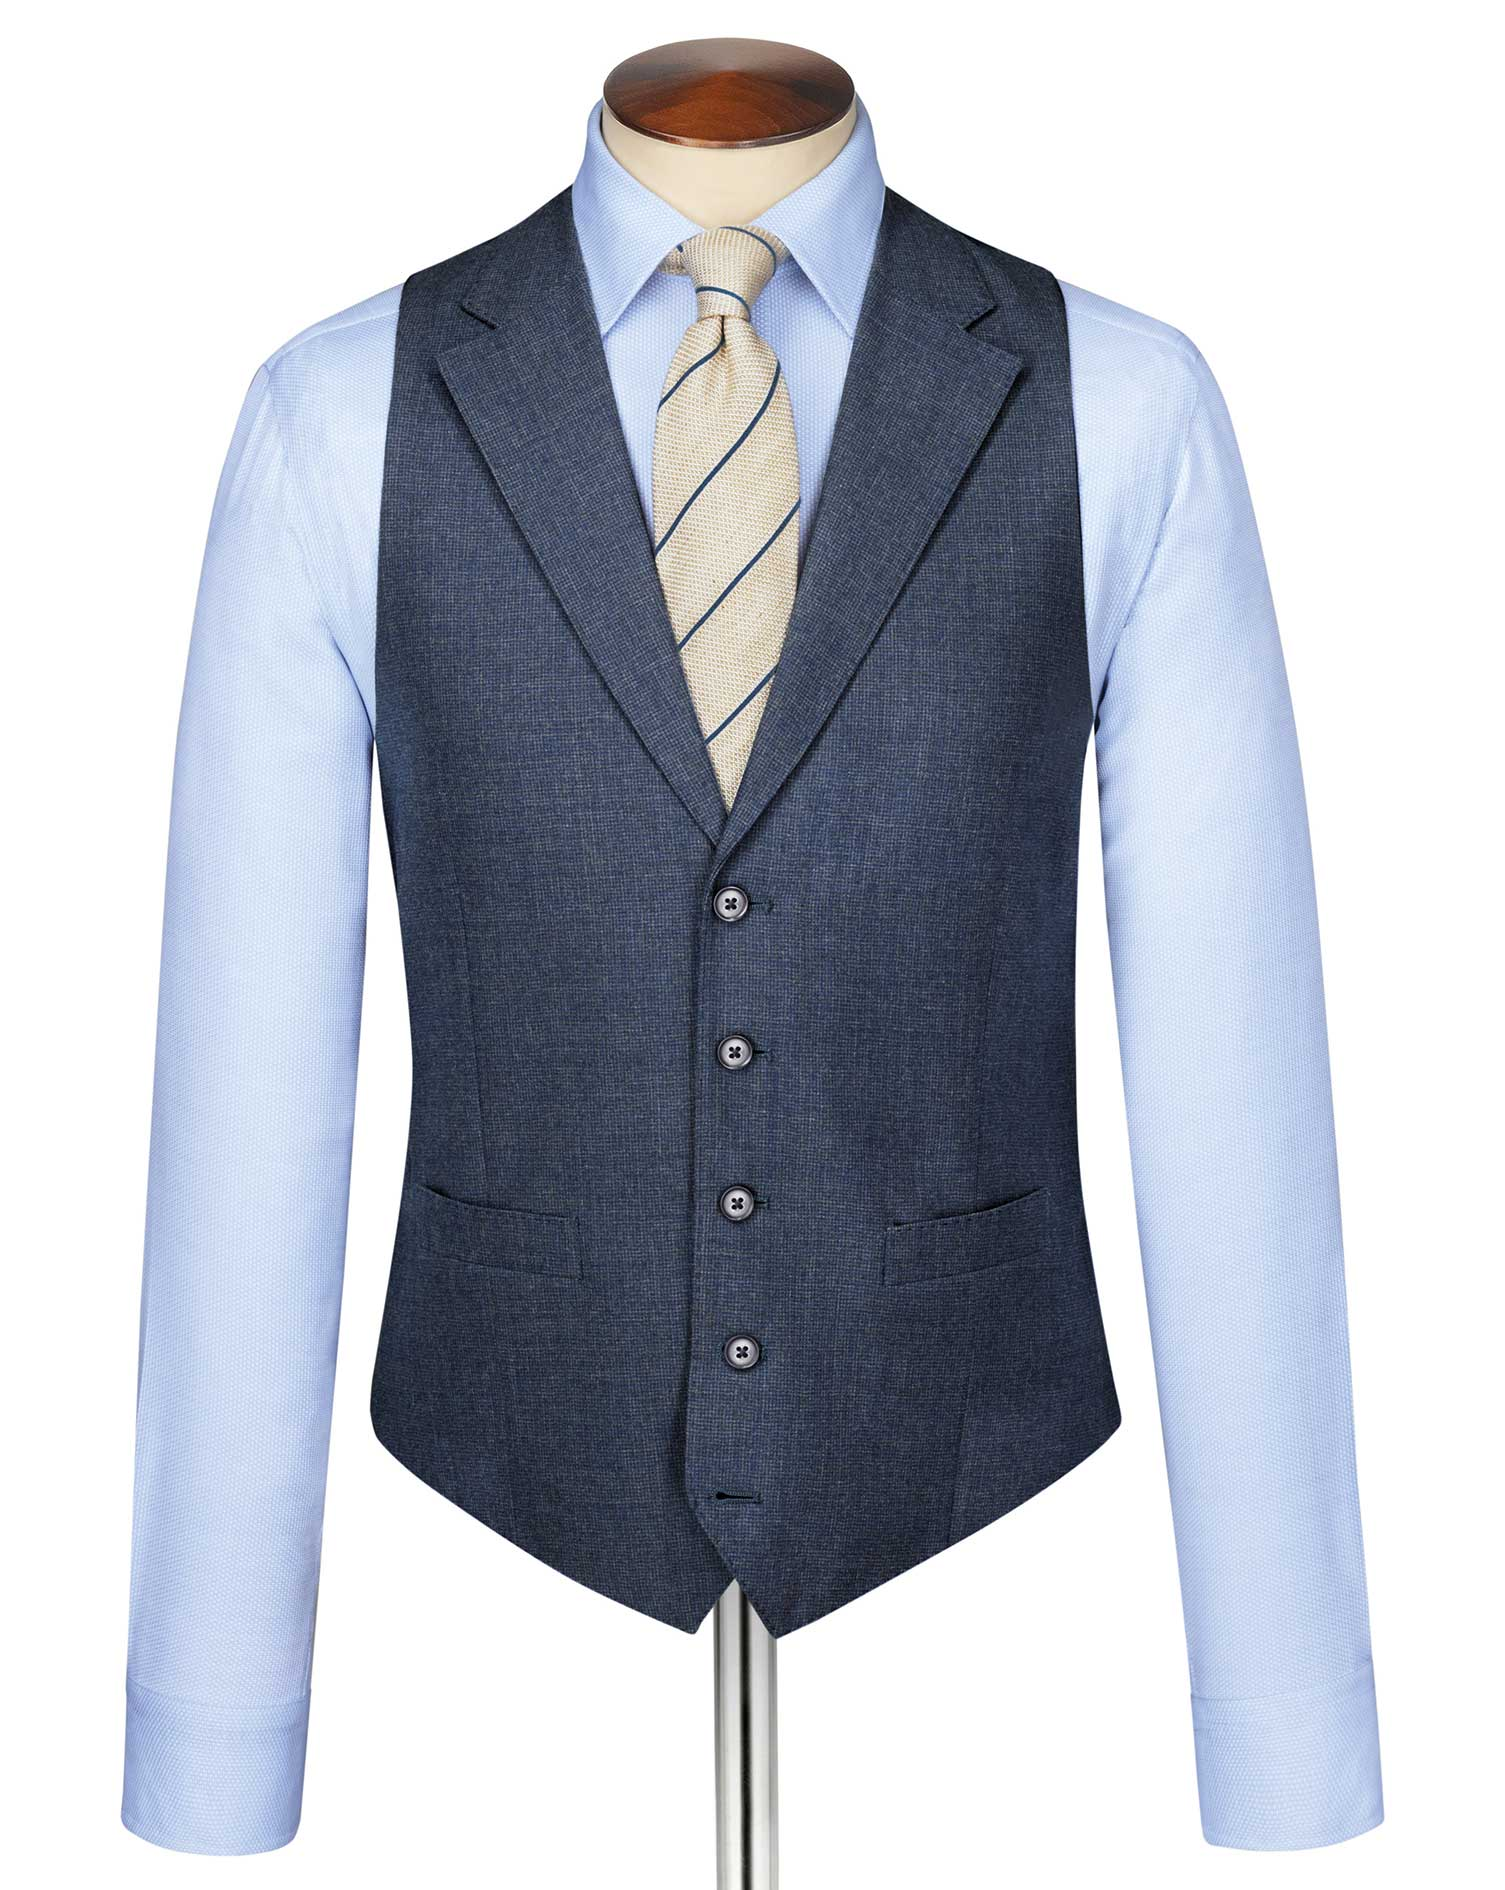 Airforce Blue Puppytooth Panama Business Suit Wool Waistcoat Size w42 by Charles Tyrwhitt